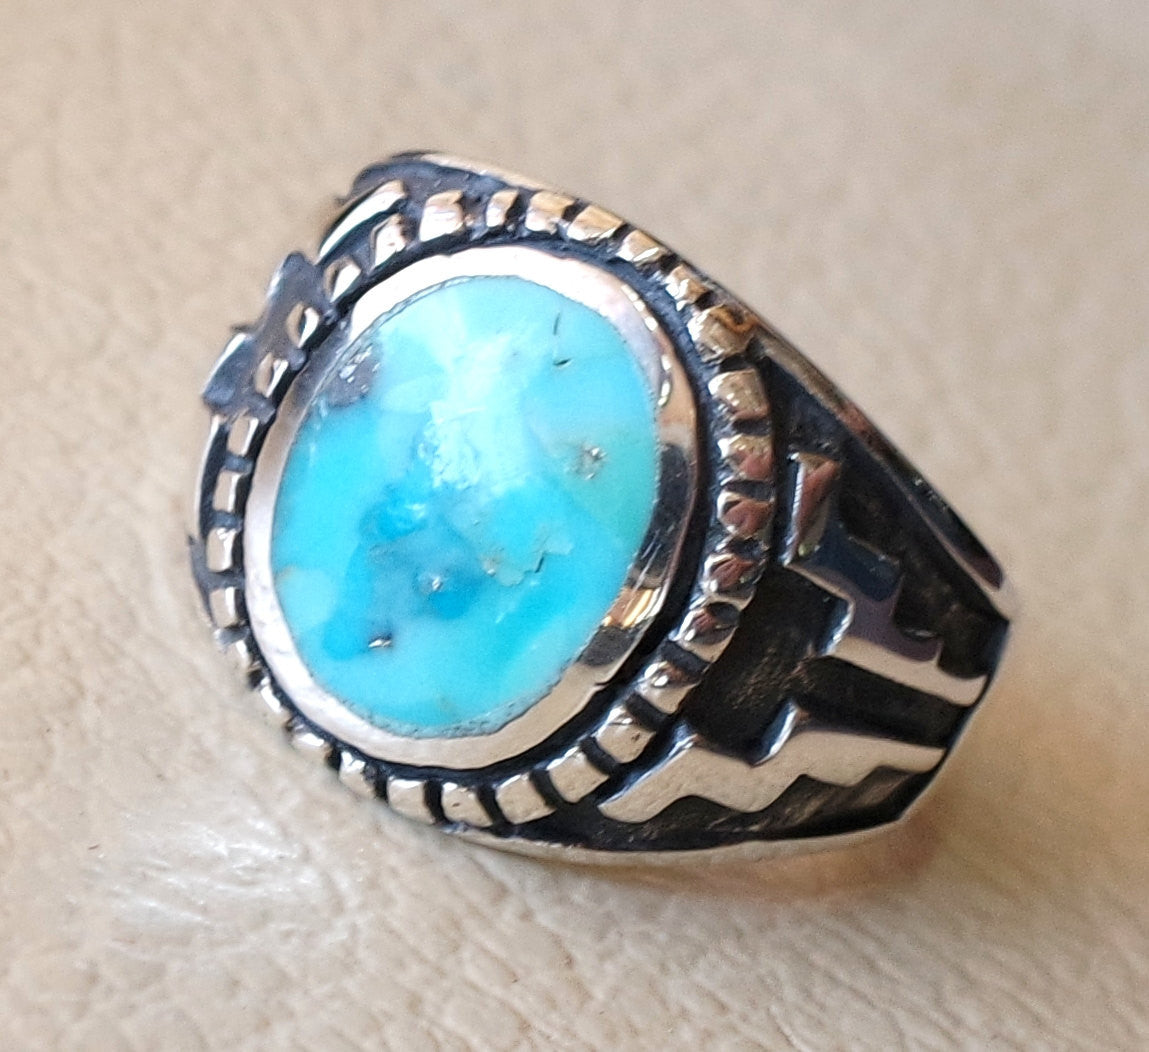 restructured natural turquoise oval blue stone sterling silver 925 man ring  any size  middle eastern ottoman style jewelry